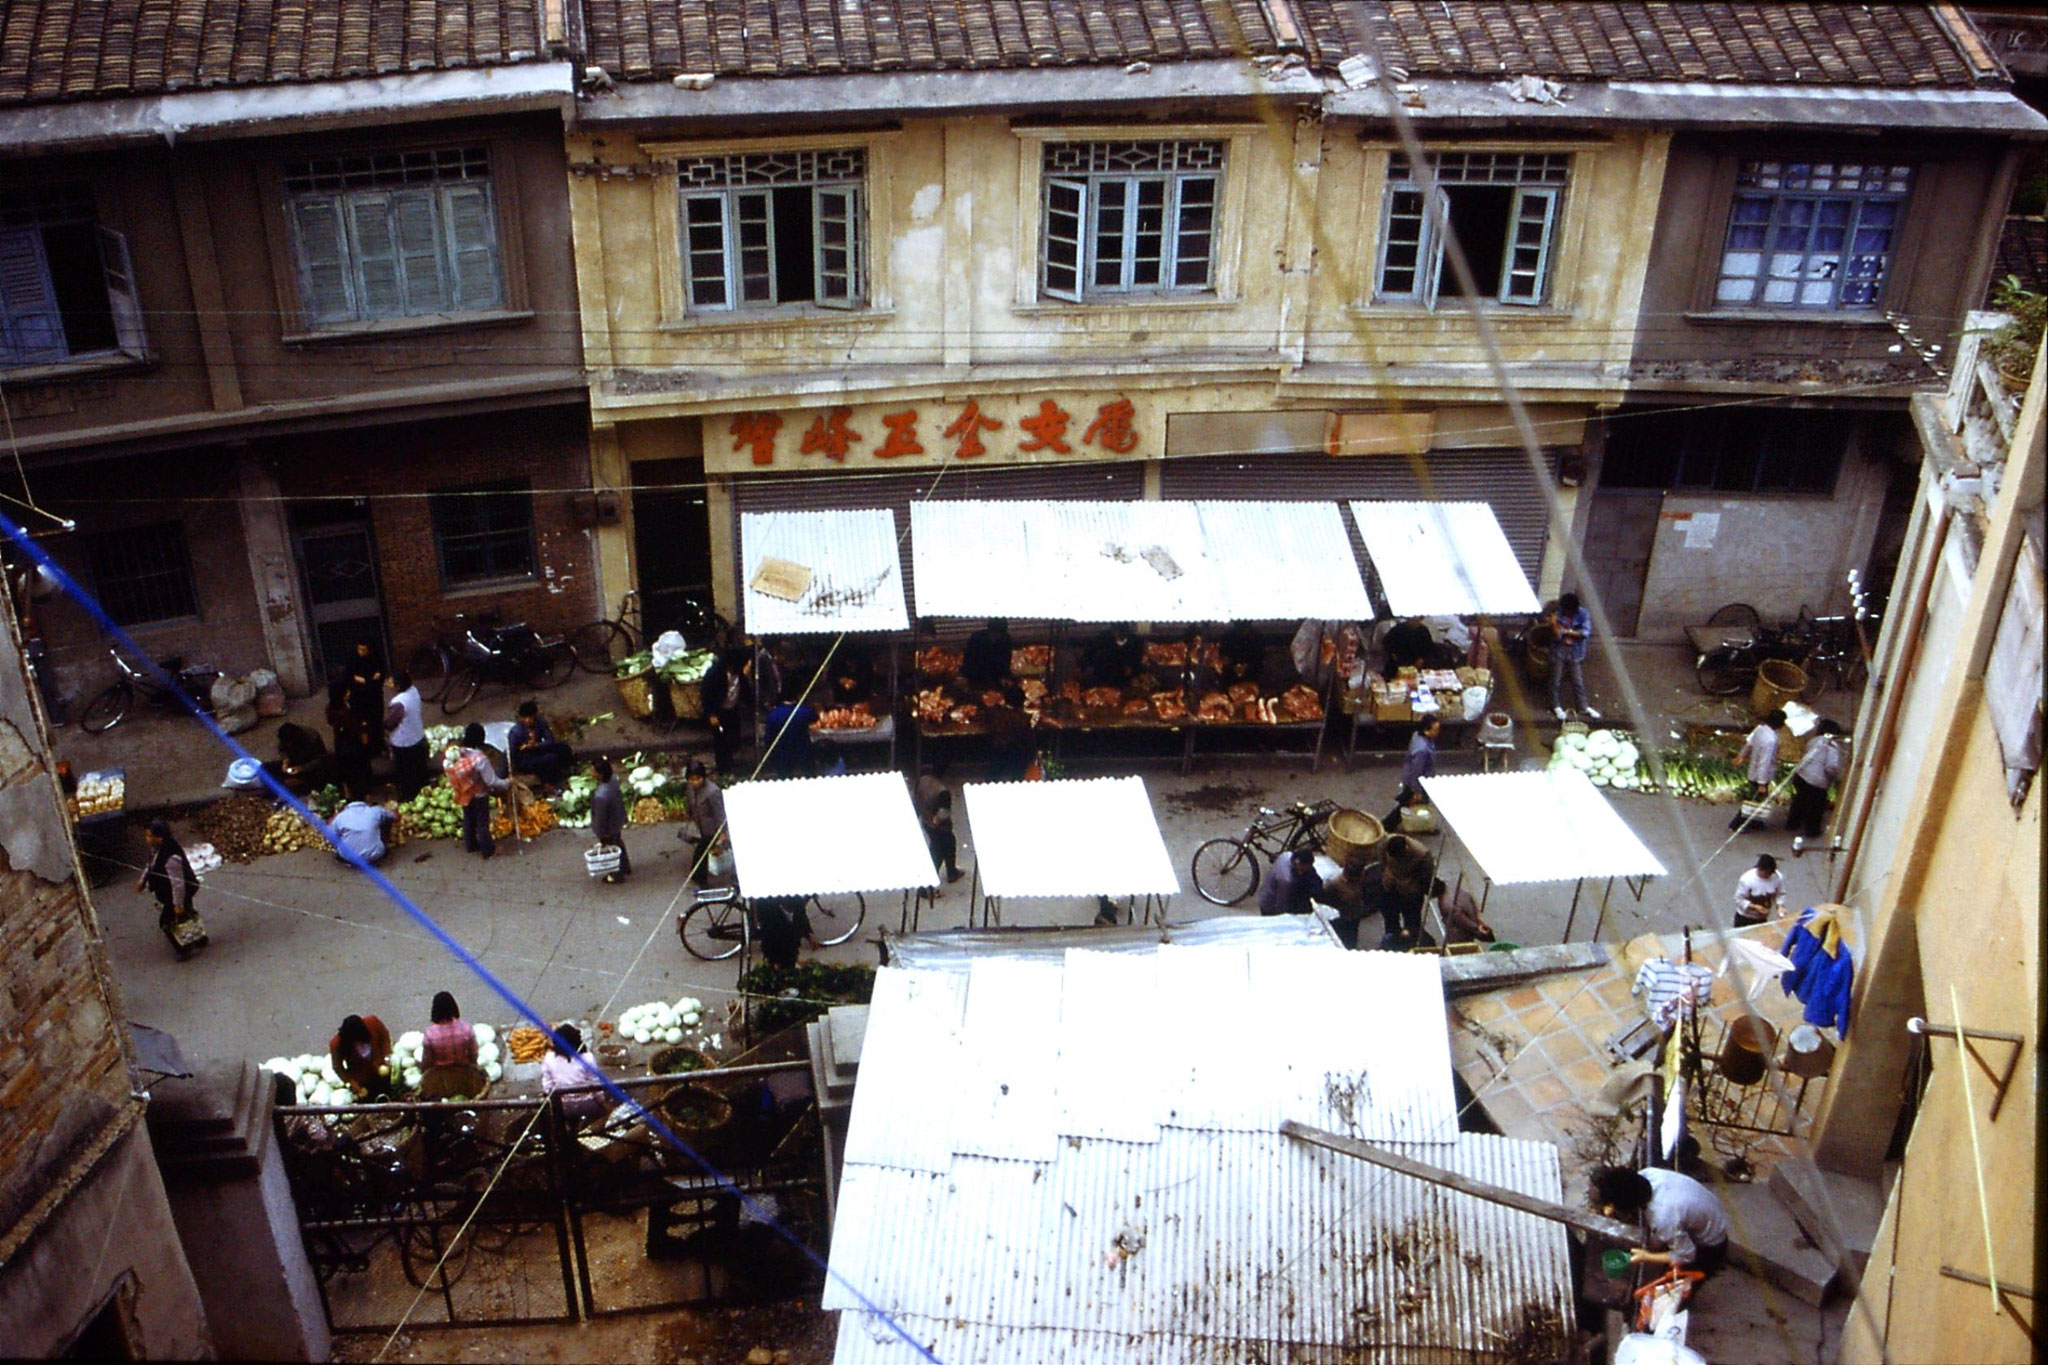 30/3/1989: 13: Xiamen market from hotel window